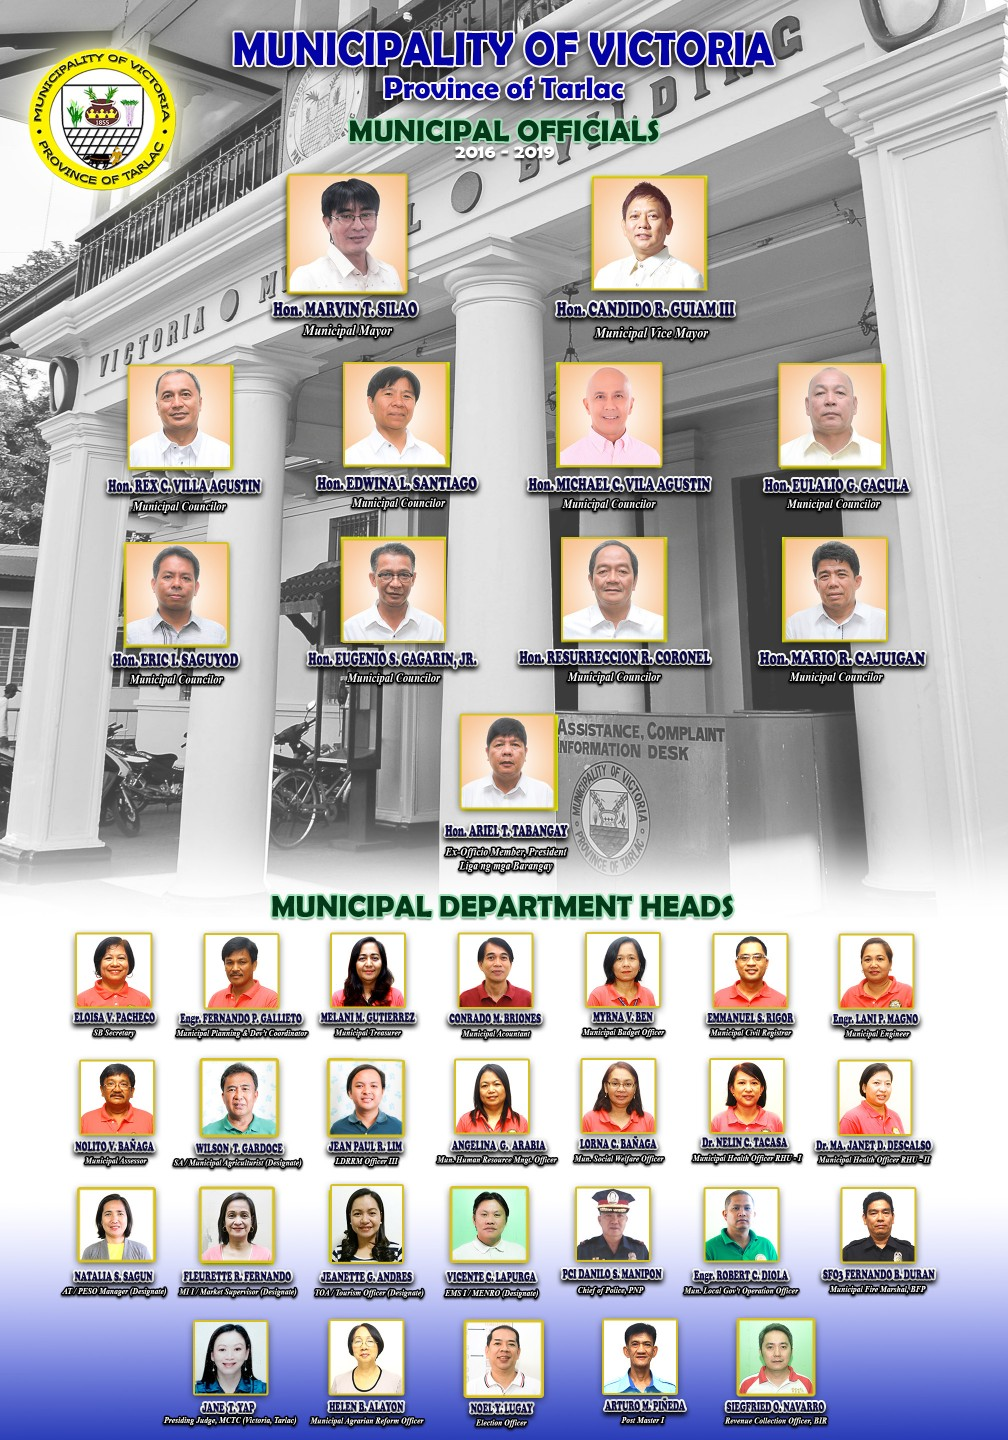 MUNICIPAL OFFICIALS AND DEPT HEADS 14in x 20in (1)